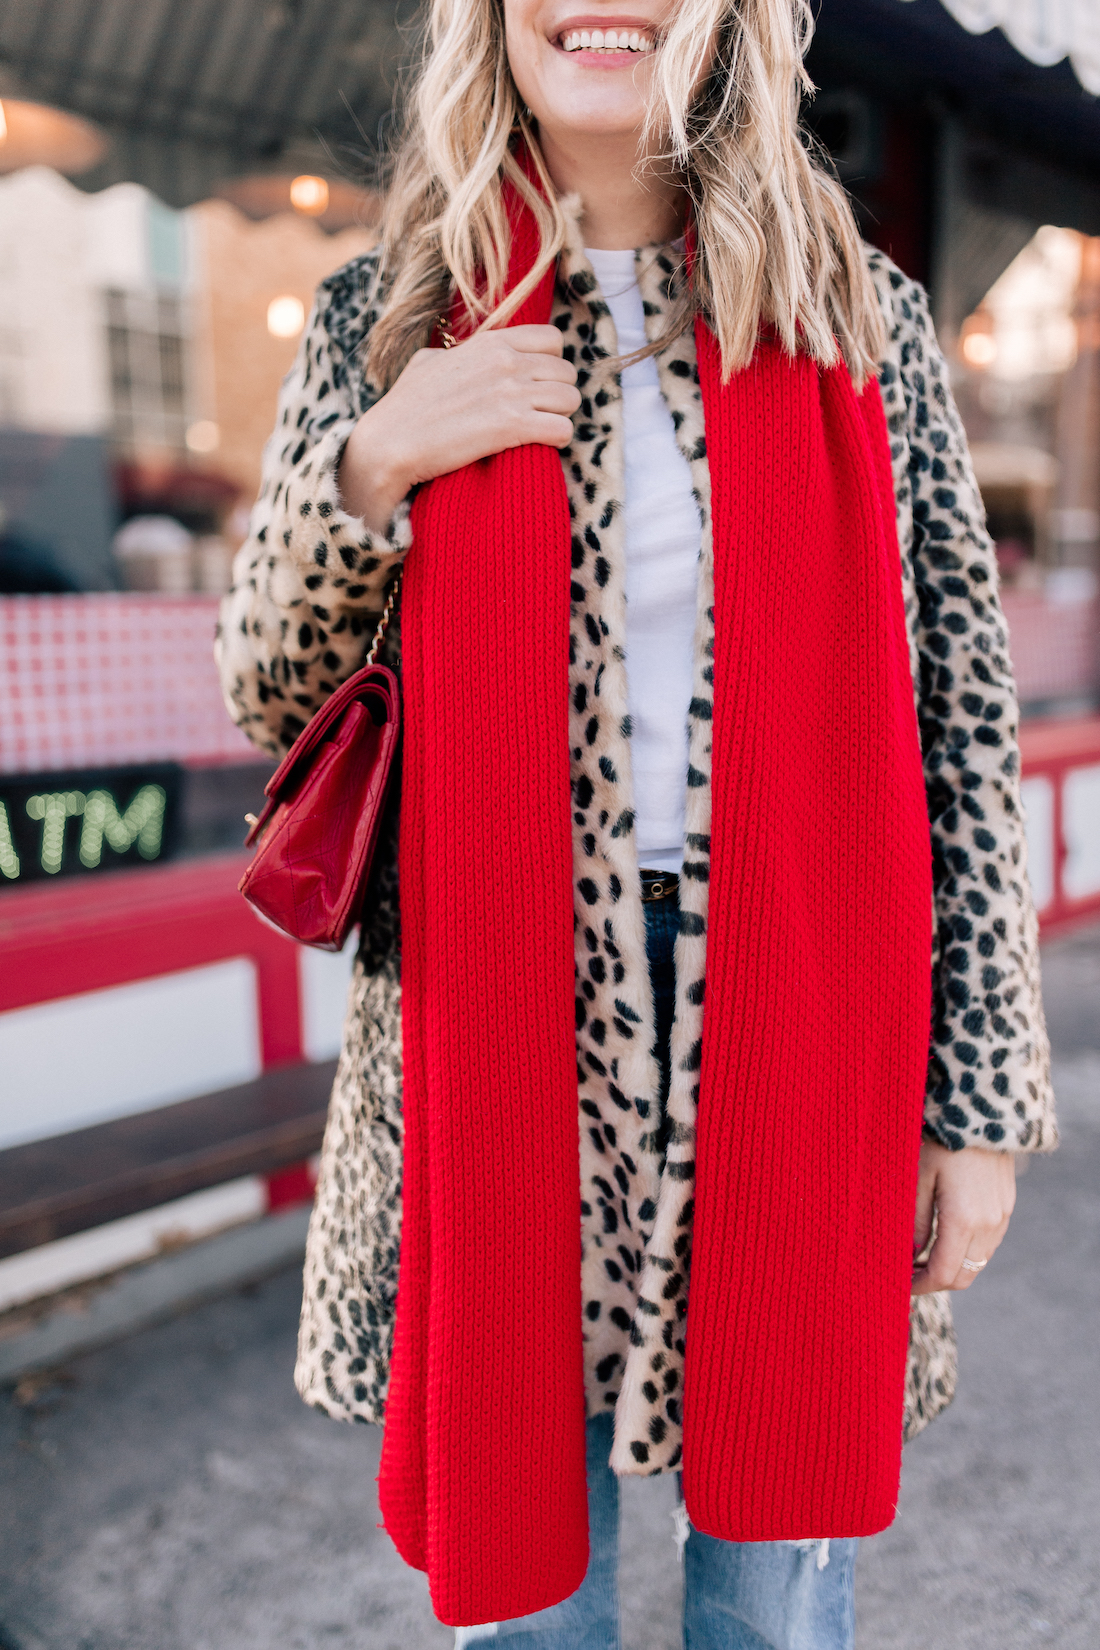 J. McLaughlin Leopard Coat  // Aether Scarf // x Karla Tee // Levi's Jeans // Vintage Chanel Purse